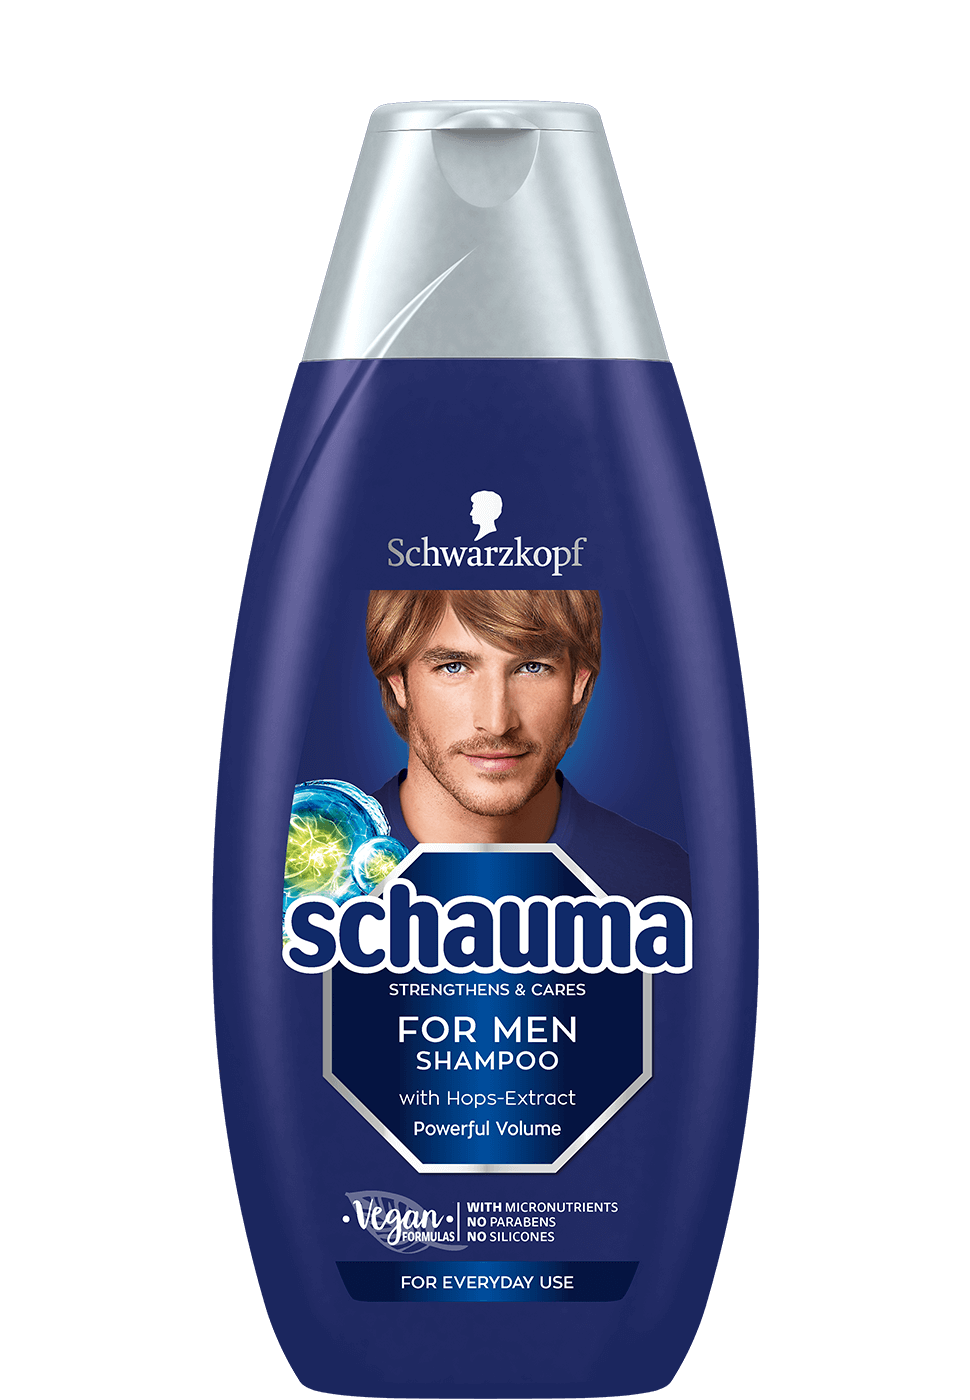 schauma_com_for_men_shampoo_970x1400